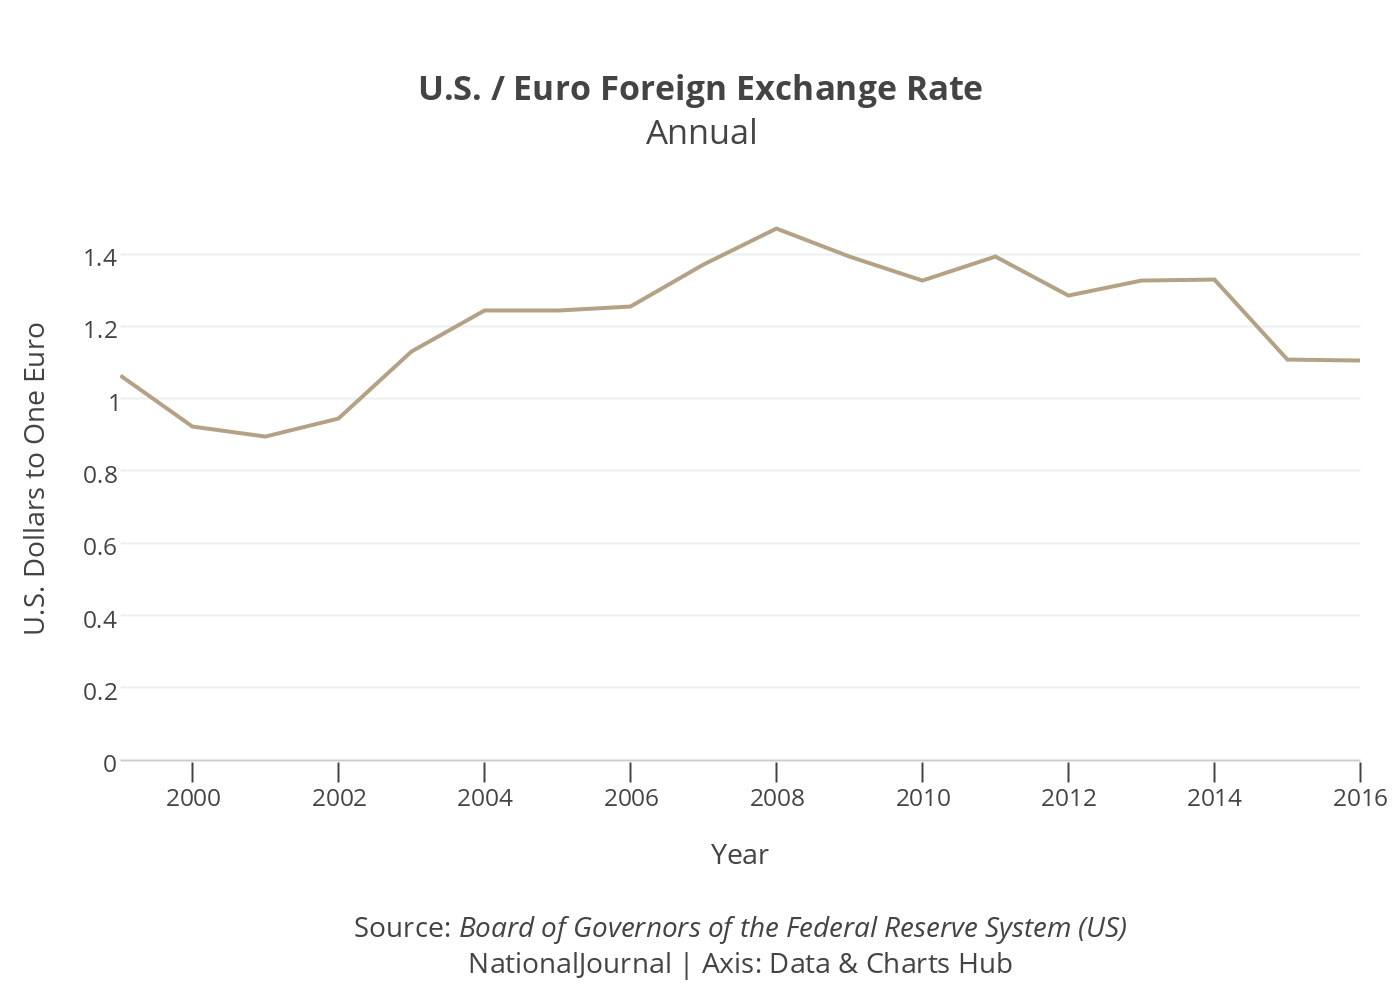 U.S. / Euro Foreign Exchange Rate